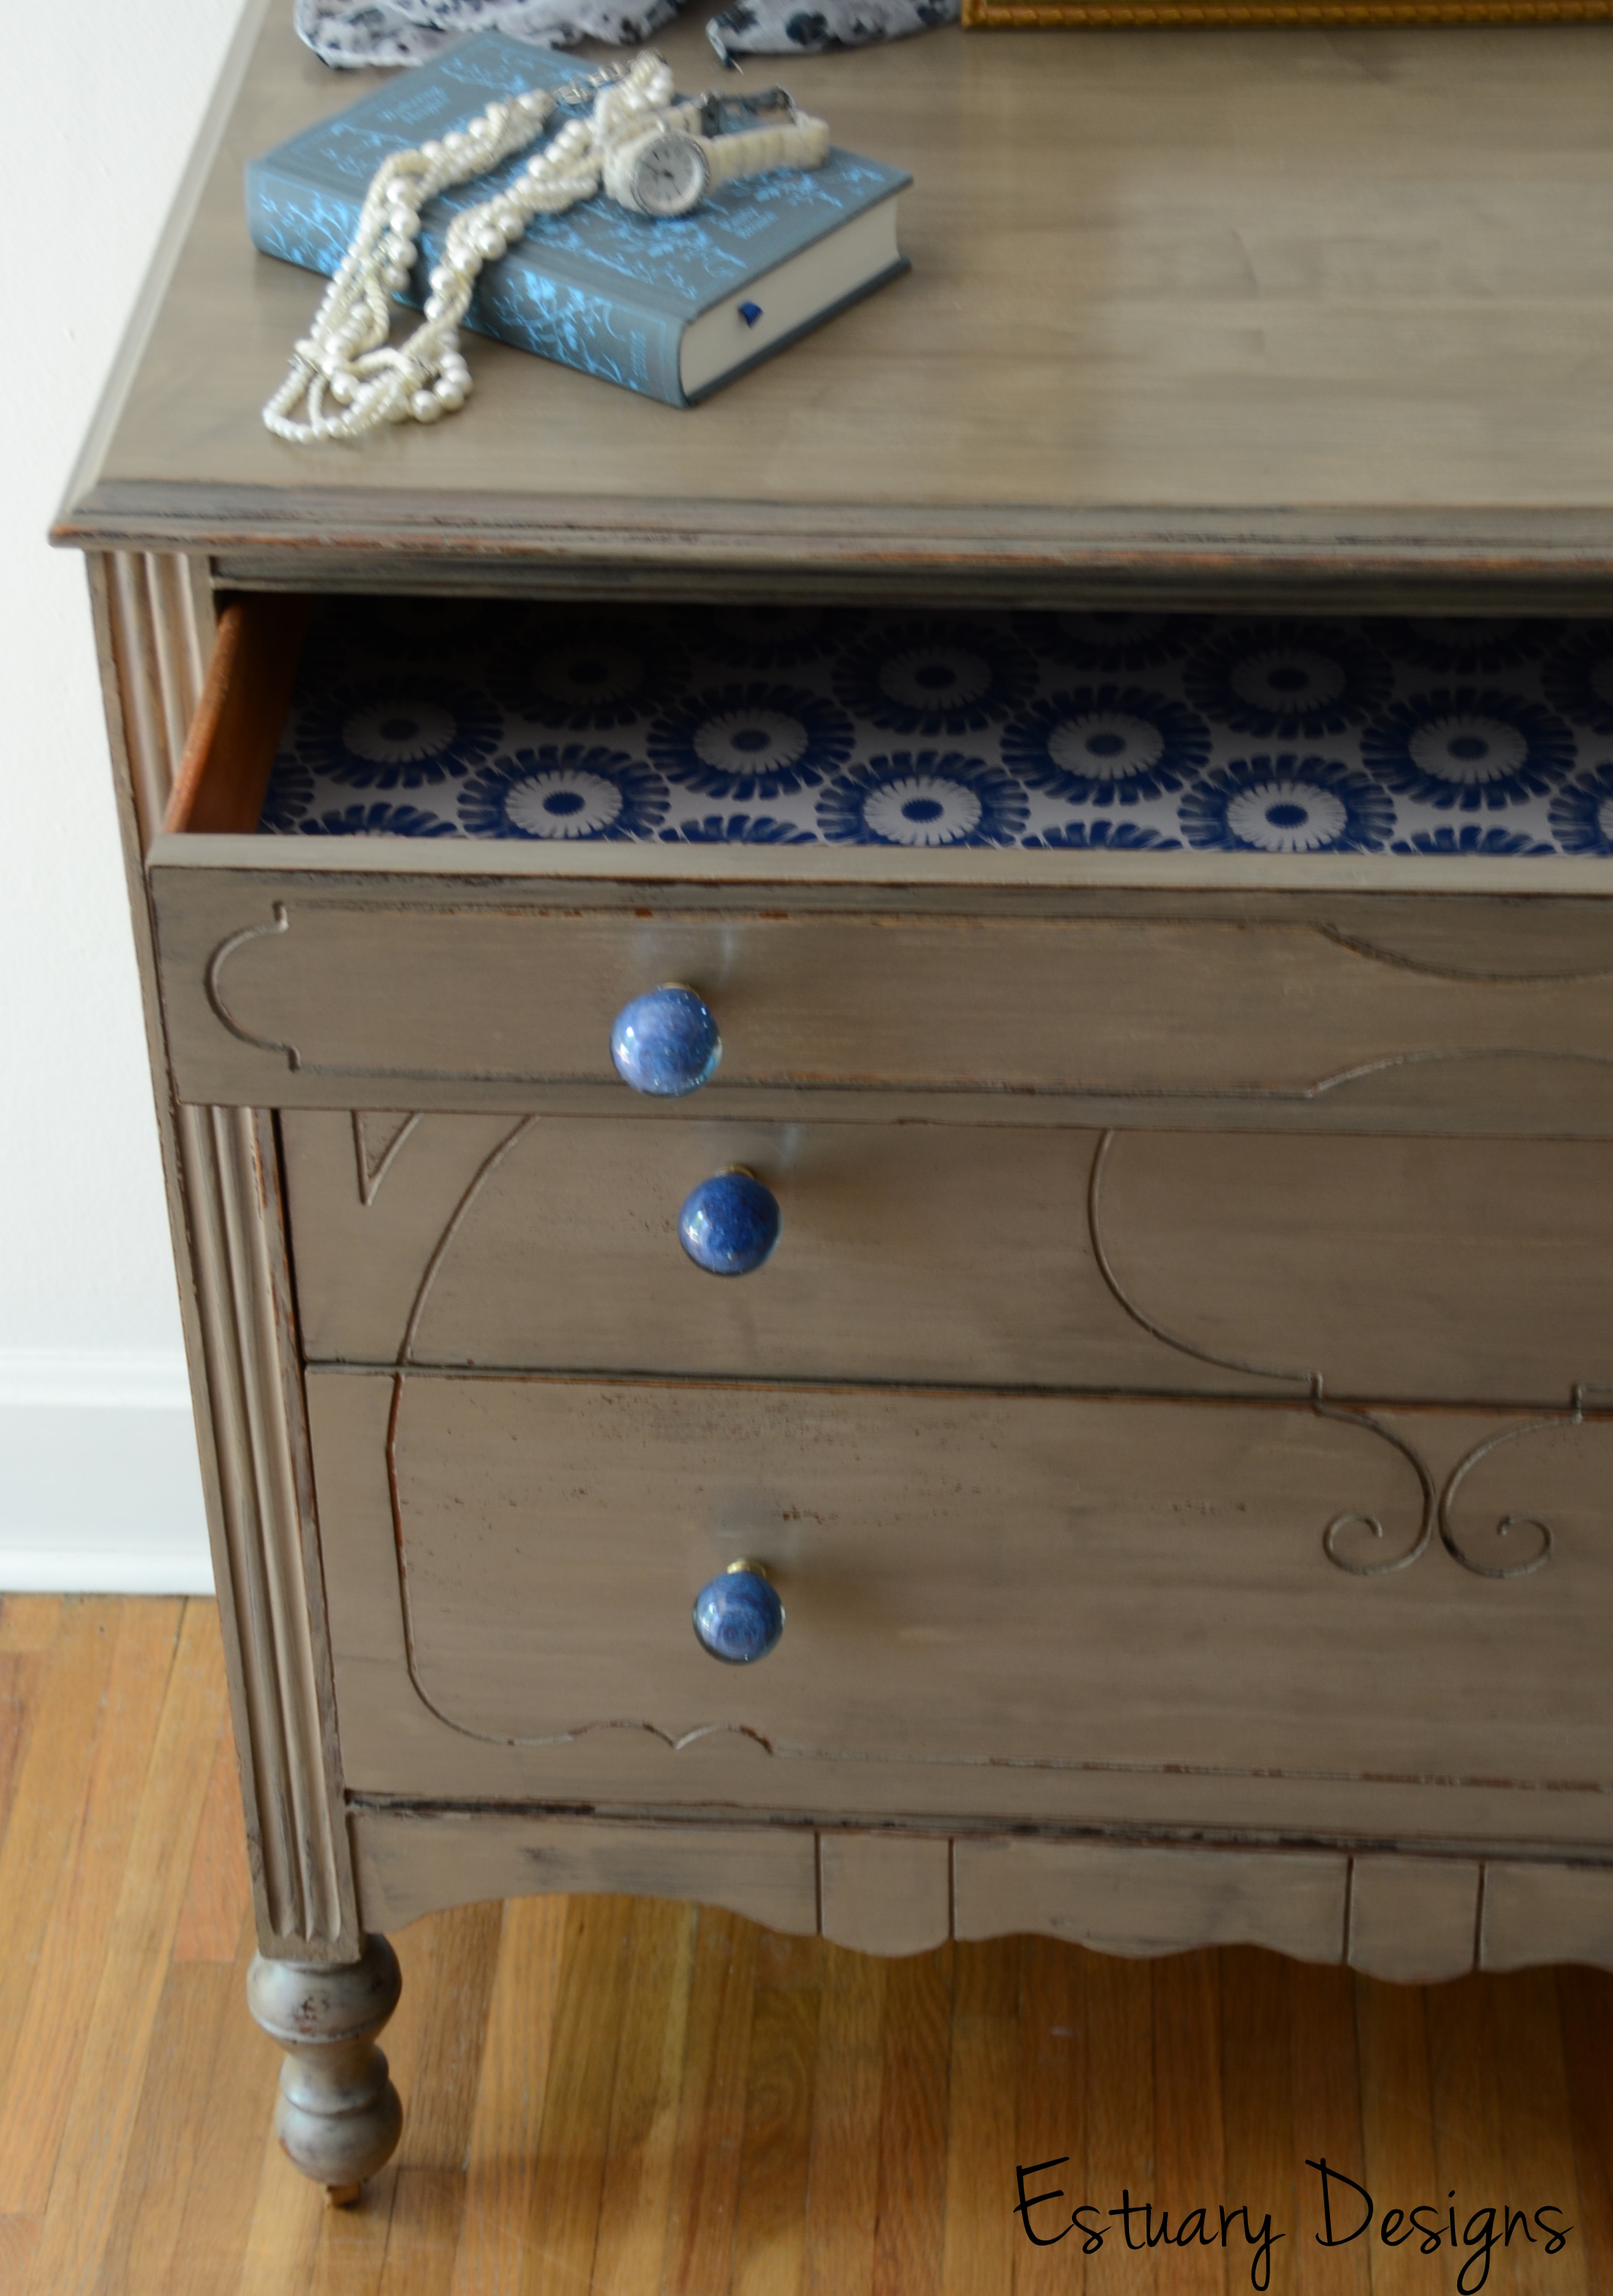 nerissa a driftwood esque three drawer dresser with blue glass knobs